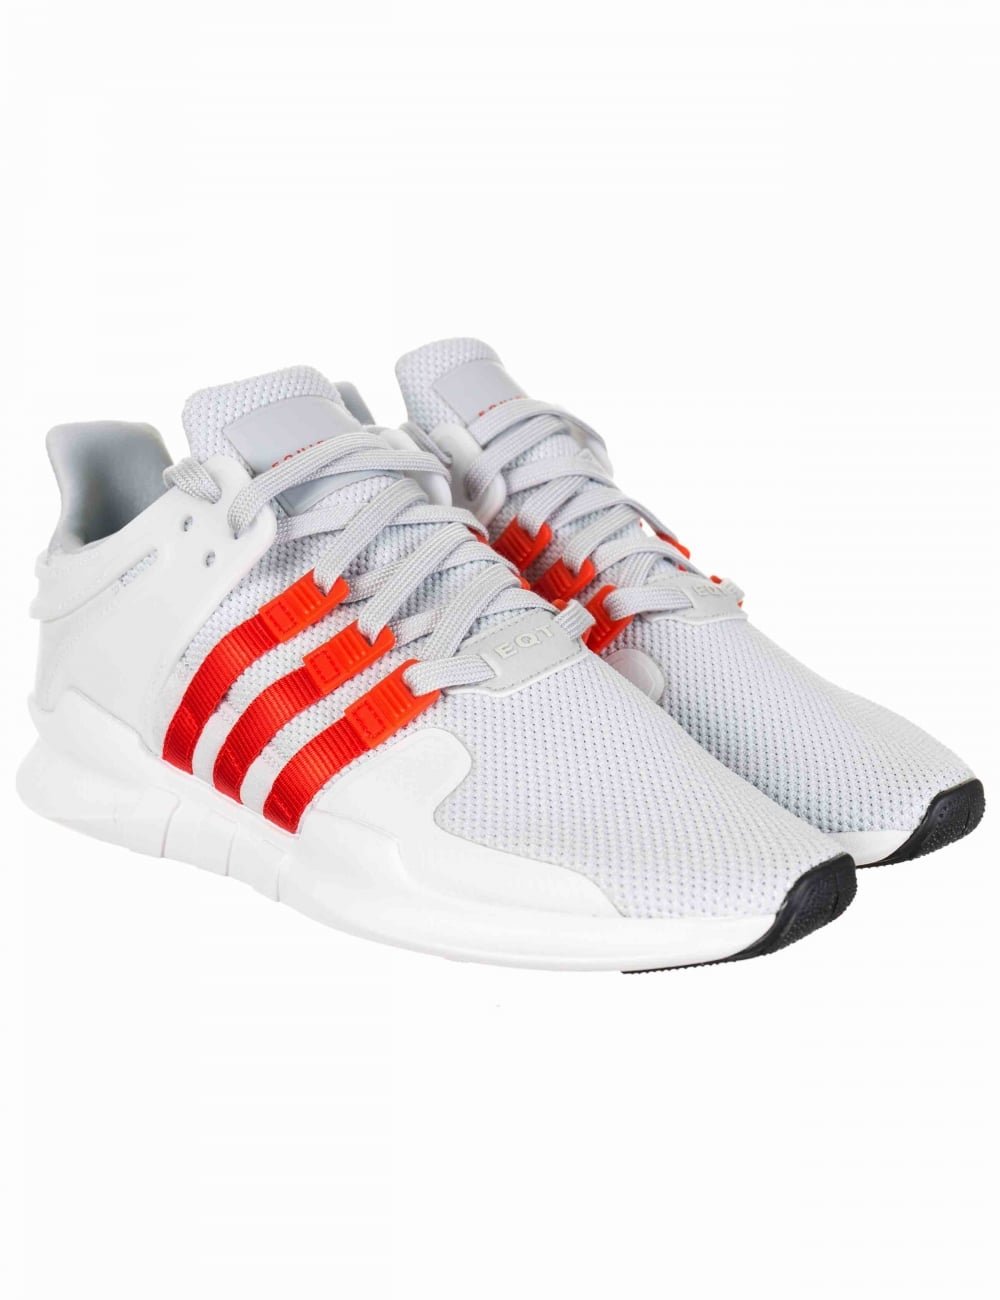 newest collection cc508 25c6f EQT Support Advance Shoes - Clear Grey/Bold Orange (BY9581)